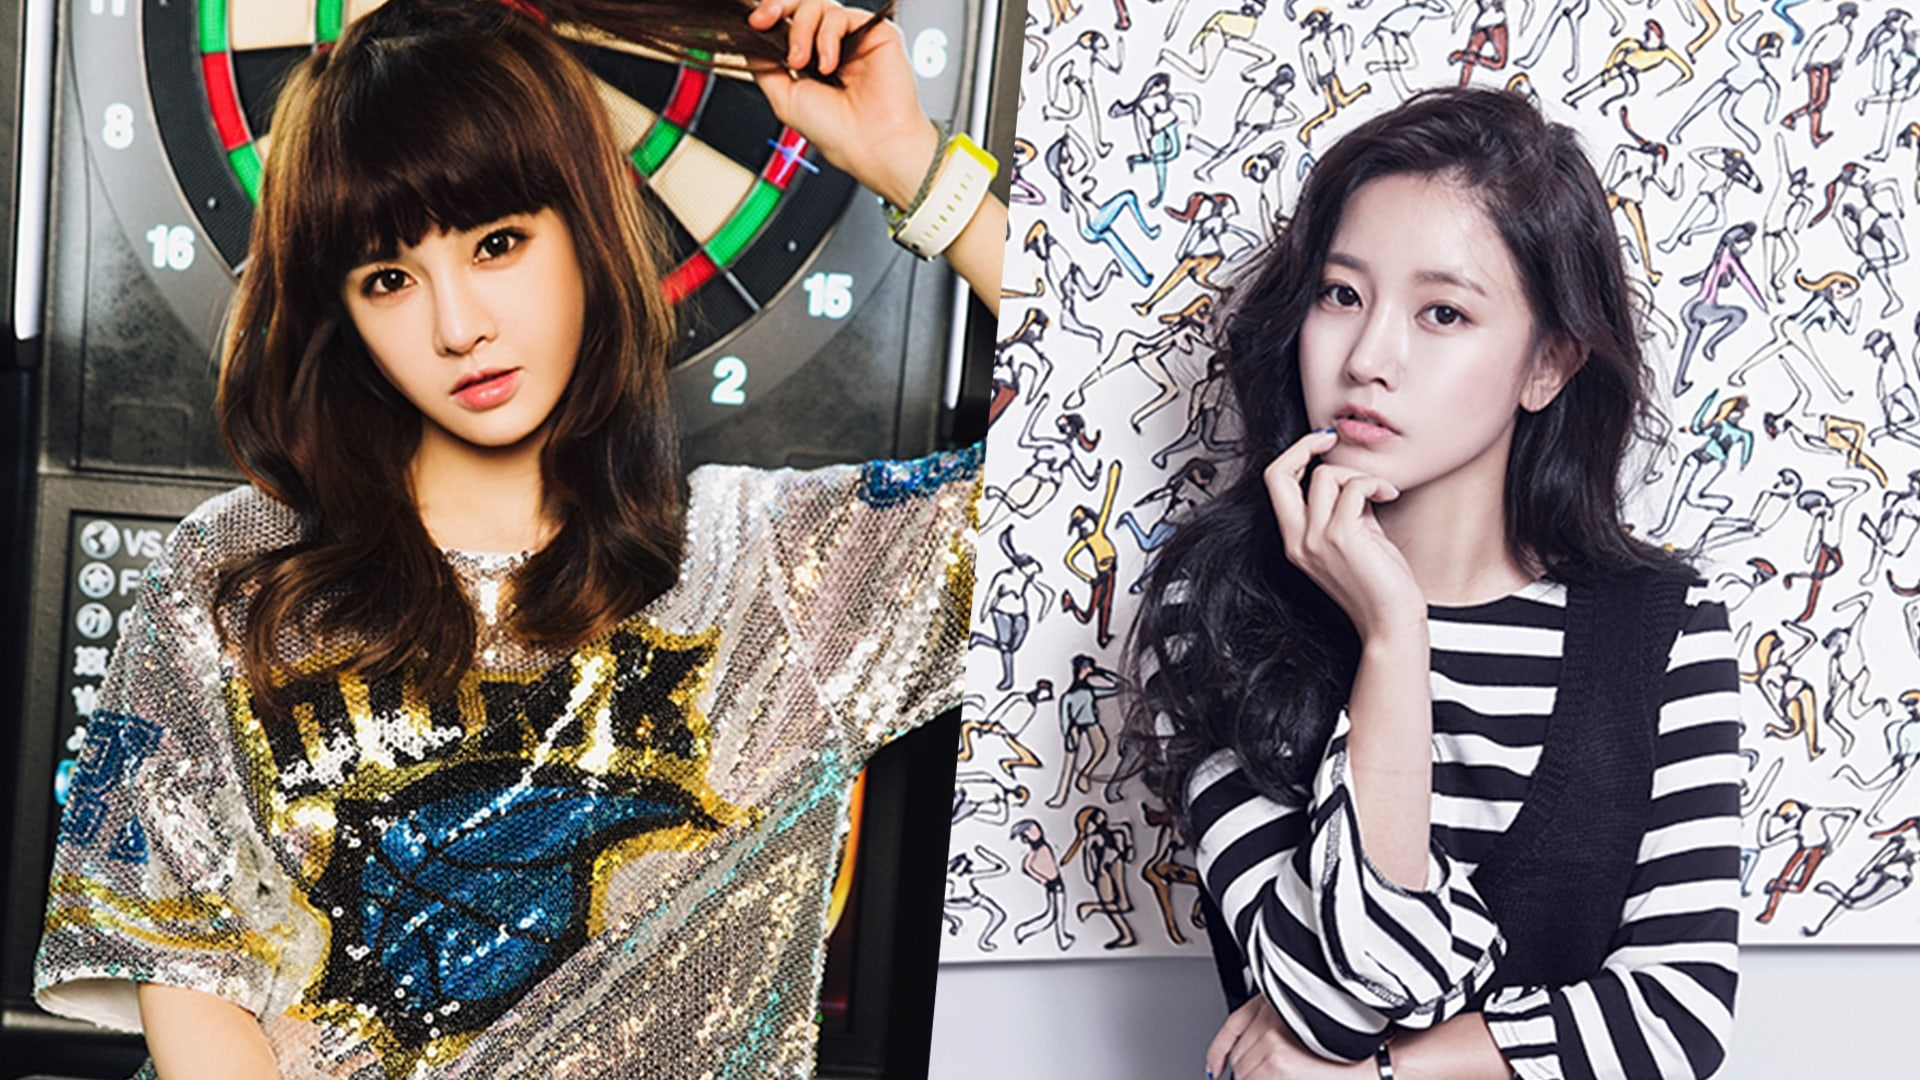 T-aras Agency Releases Statements About Soyeon And Borams Worrisome Independent Actions